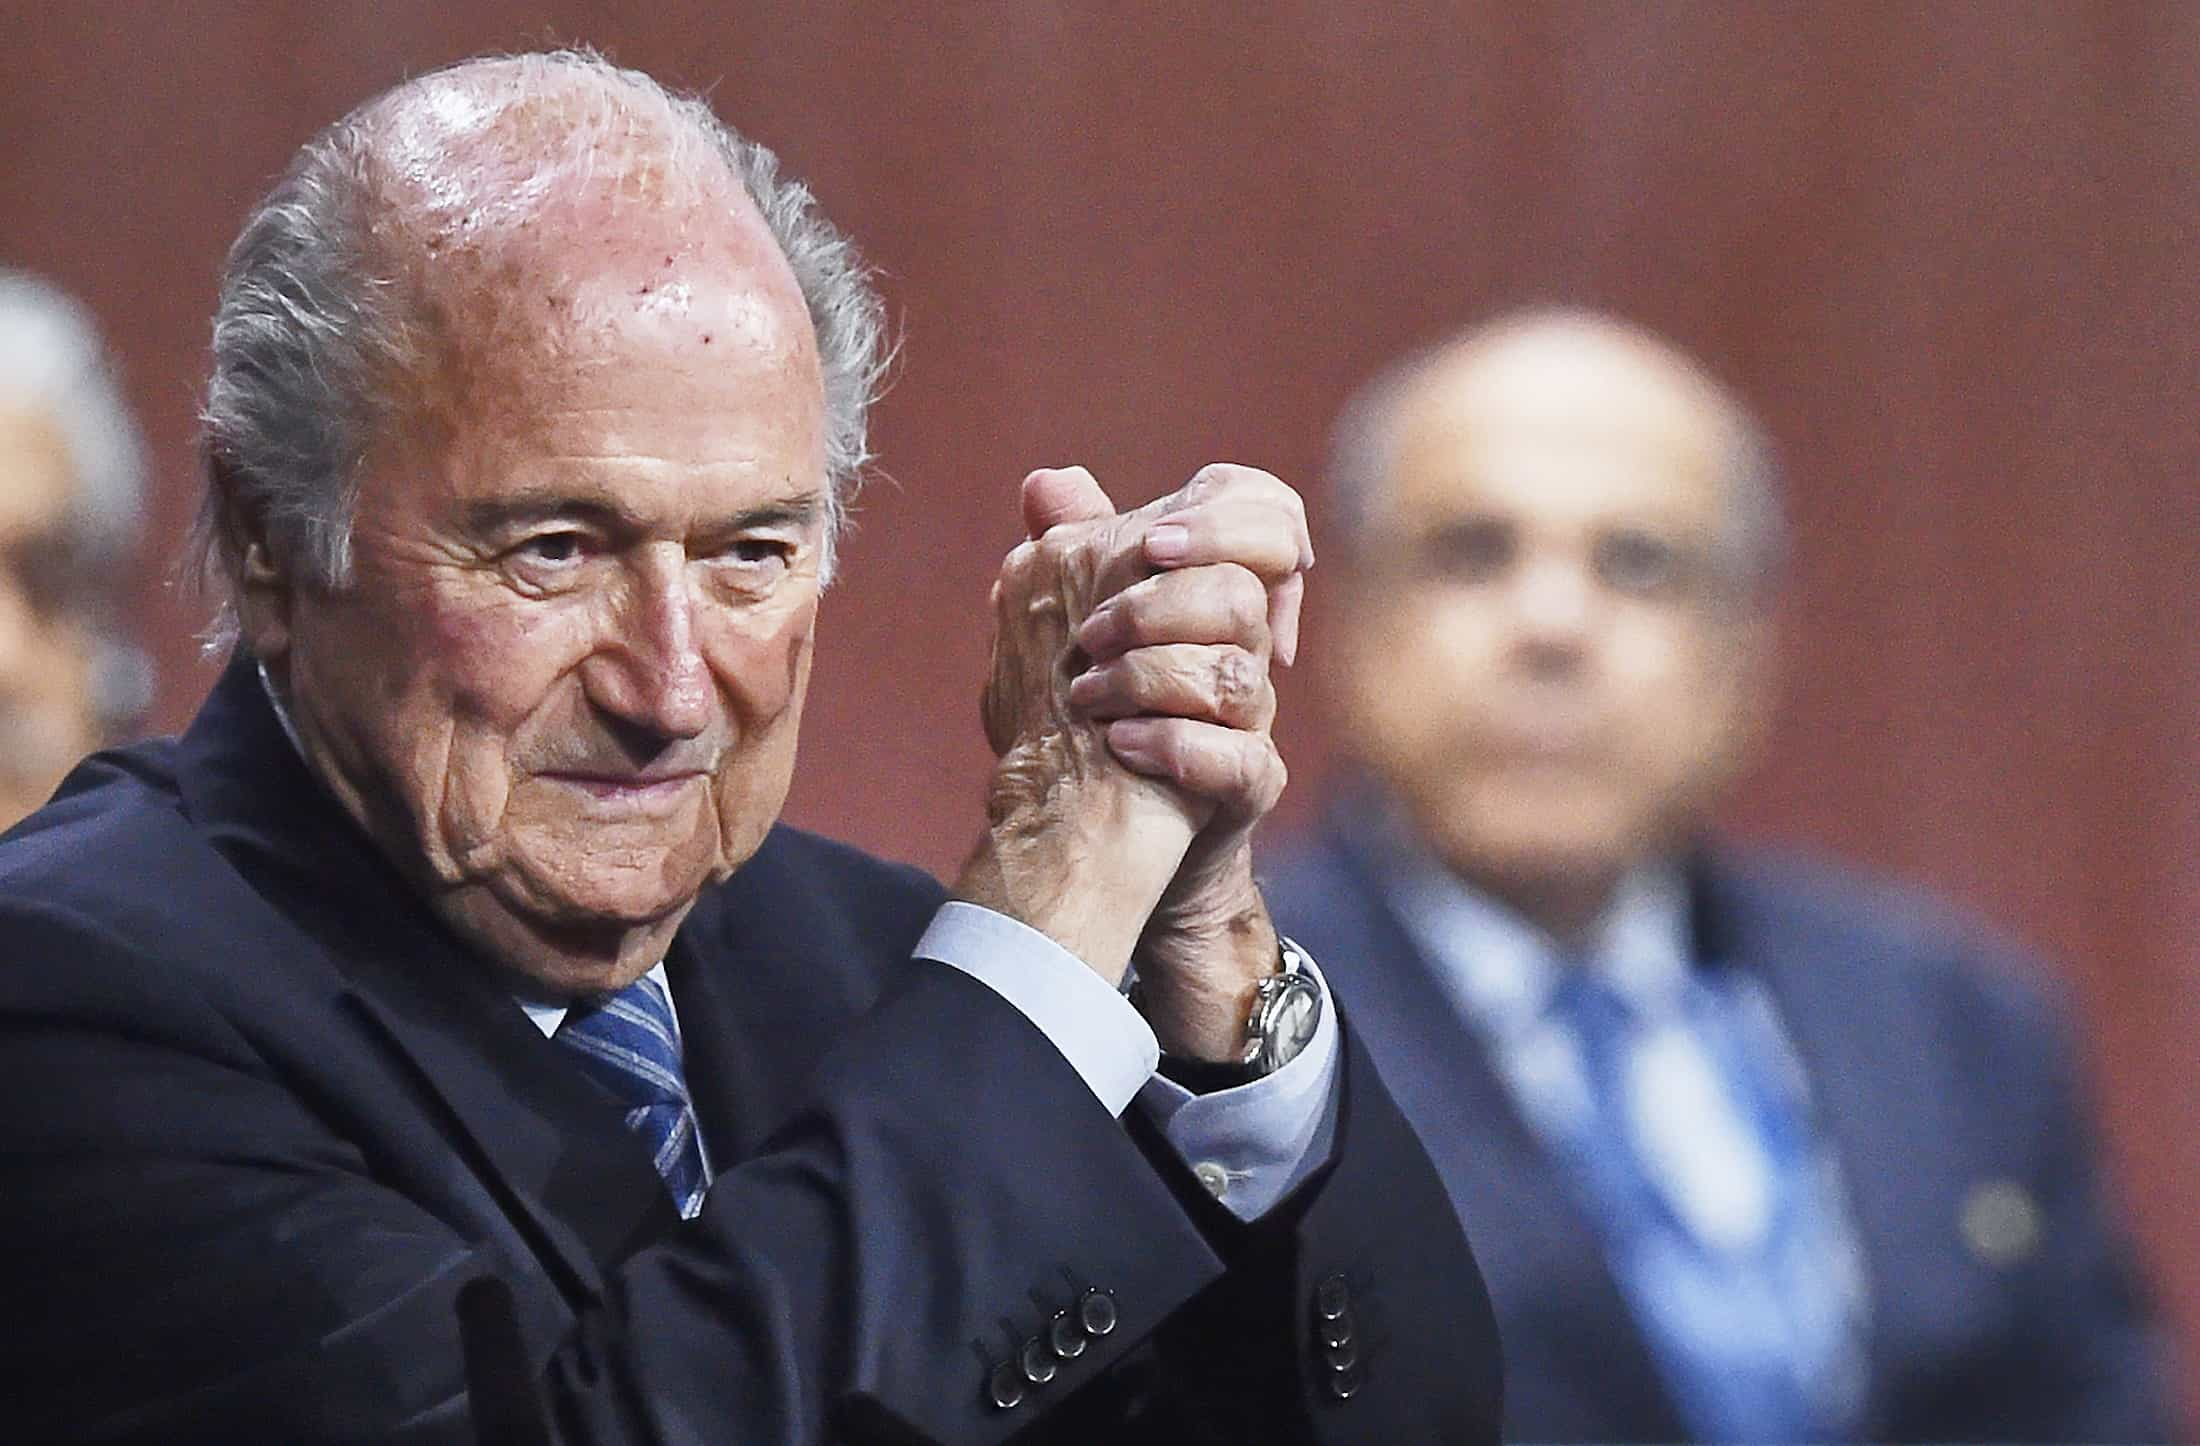 FIFA President Sepp Blatter gestures after being re-elected.